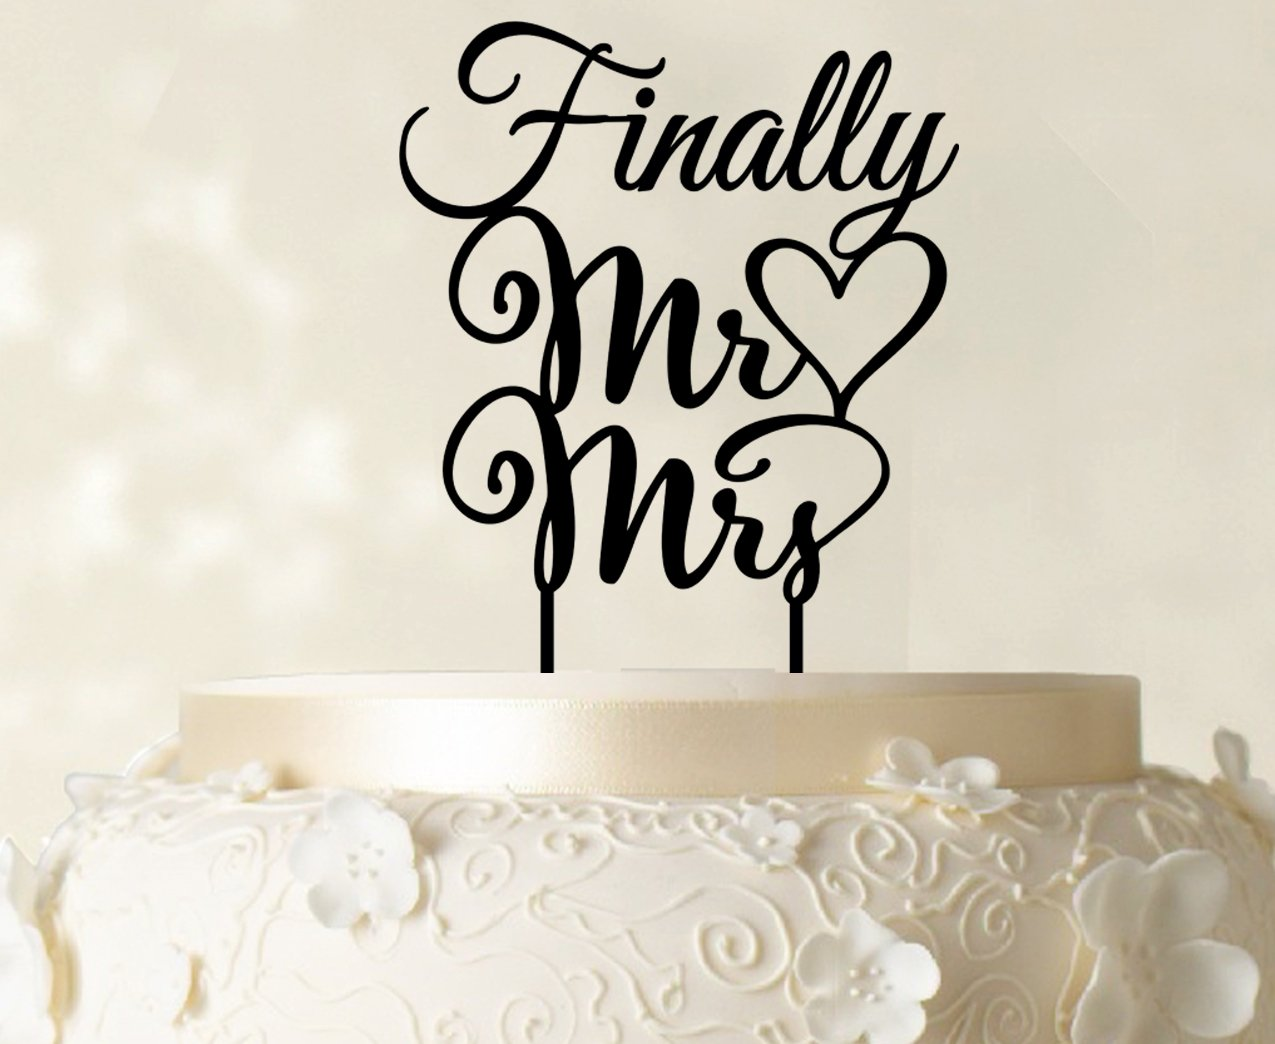 Amazon finally mr and mrs wedding cake topper personalized amazon finally mr and mrs wedding cake topper personalized custom name cake toppers color option available 5 7 inches wide kitchen dining junglespirit Image collections